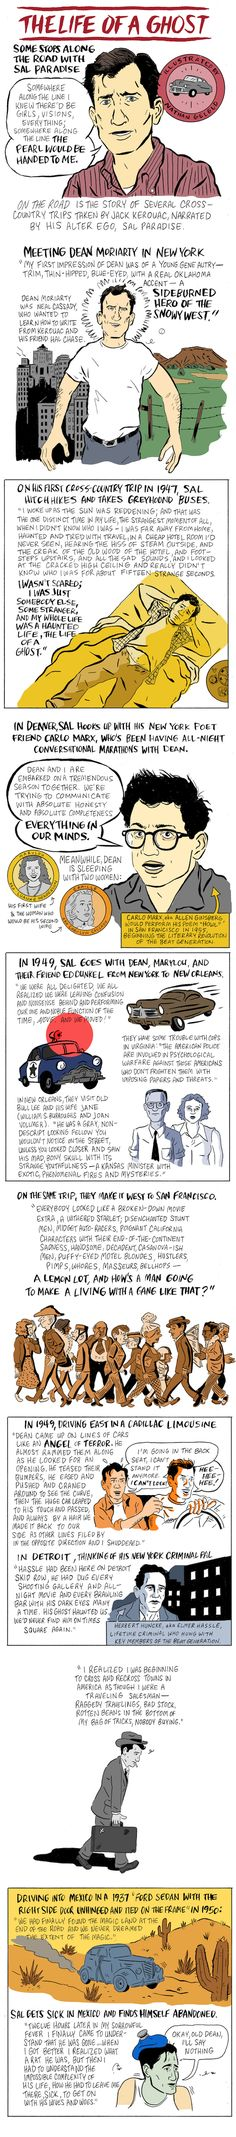 On the anniversary of Jack Kerouac's On the Road, we're taking an illustrated look back at its major players, from Allen Ginsberg to Neal Cassady. Victor Hugo Quotes, Allen Ginsberg, Beat Generation, Typewriter Series, Jack Kerouac, Education Architecture, John Keats, Penguin Random House, Animal Tattoos